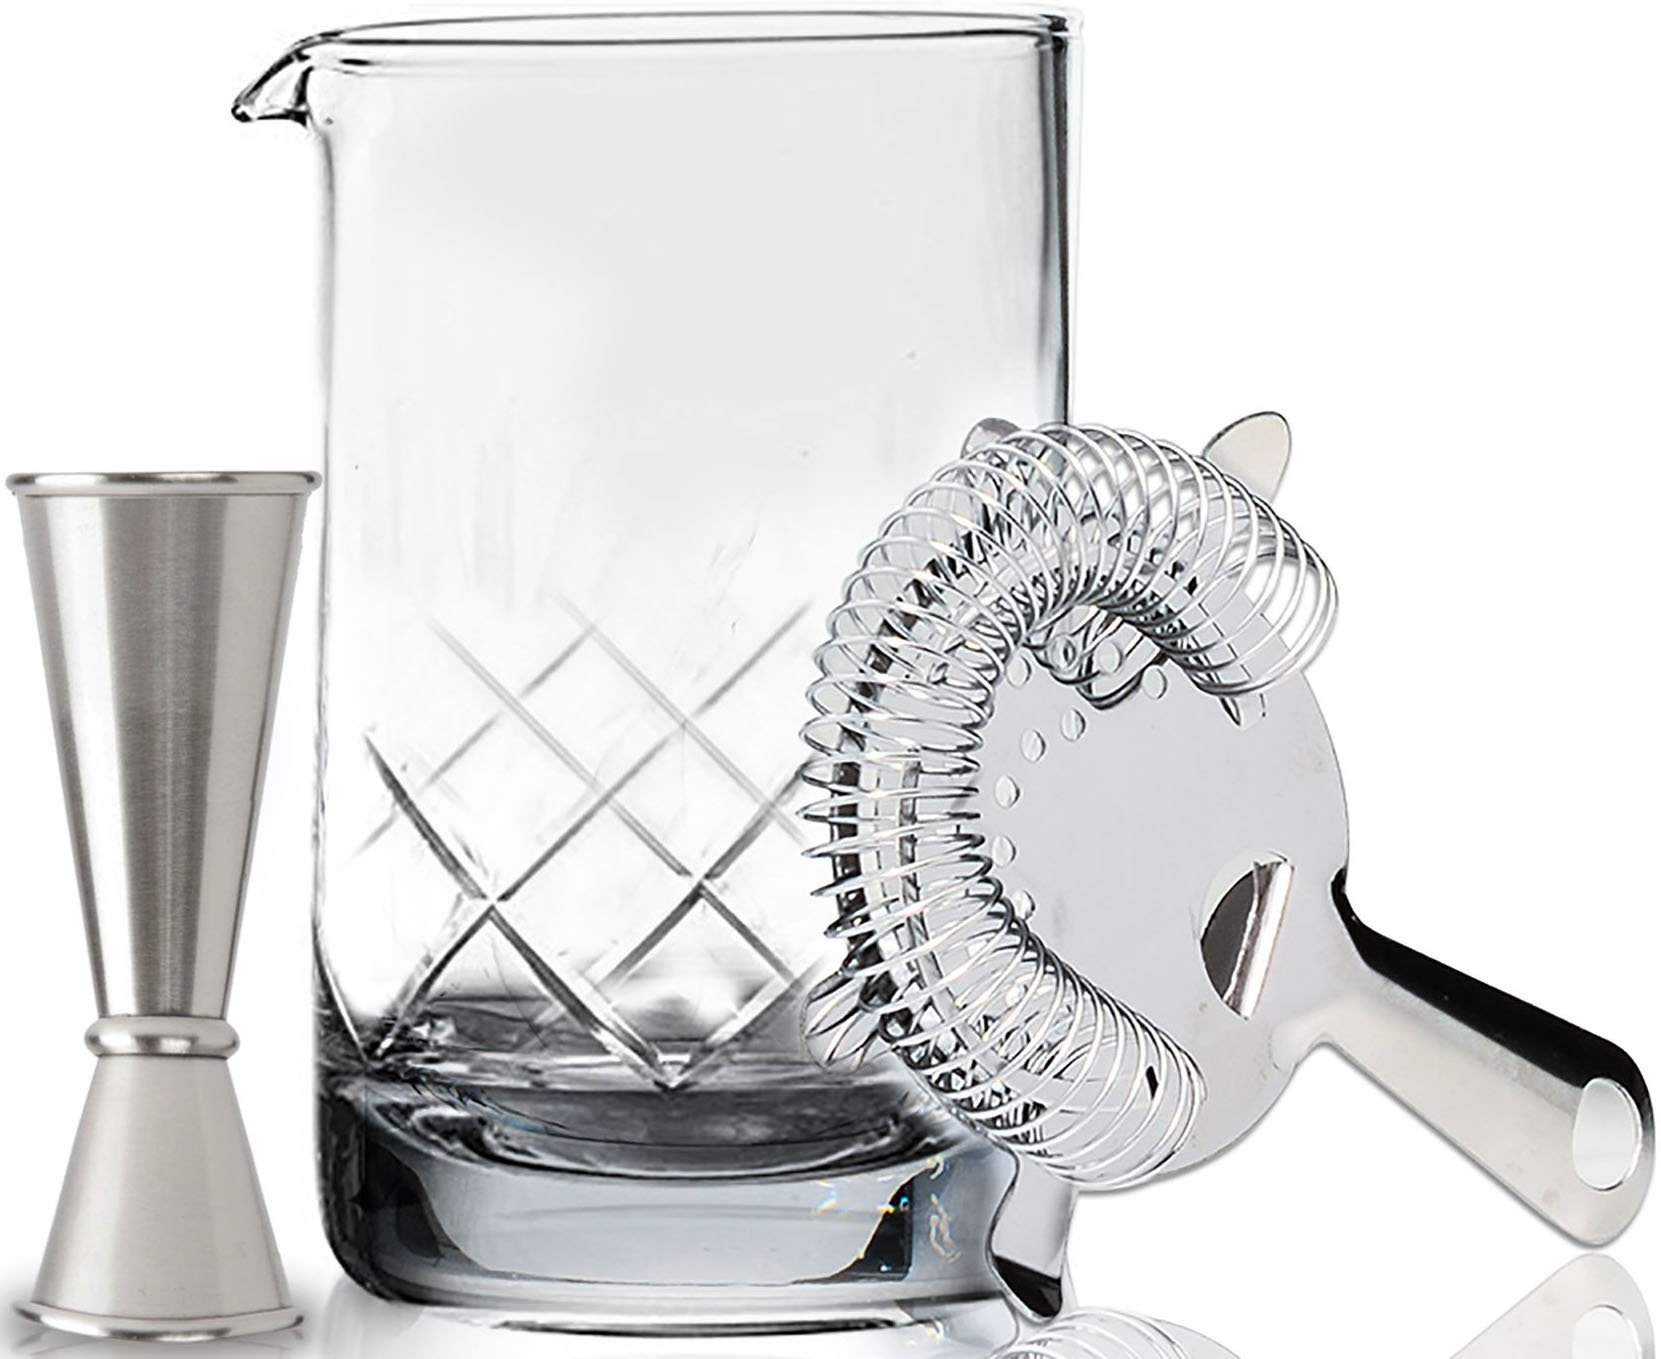 Premium Cocktail Mixing Glass Set - Thick Bottom 18oz (550ml) Seamless Lead Free Crystal Mixing Glass, Jigger & Strainer - Professional Quality - Makes a Great Gift